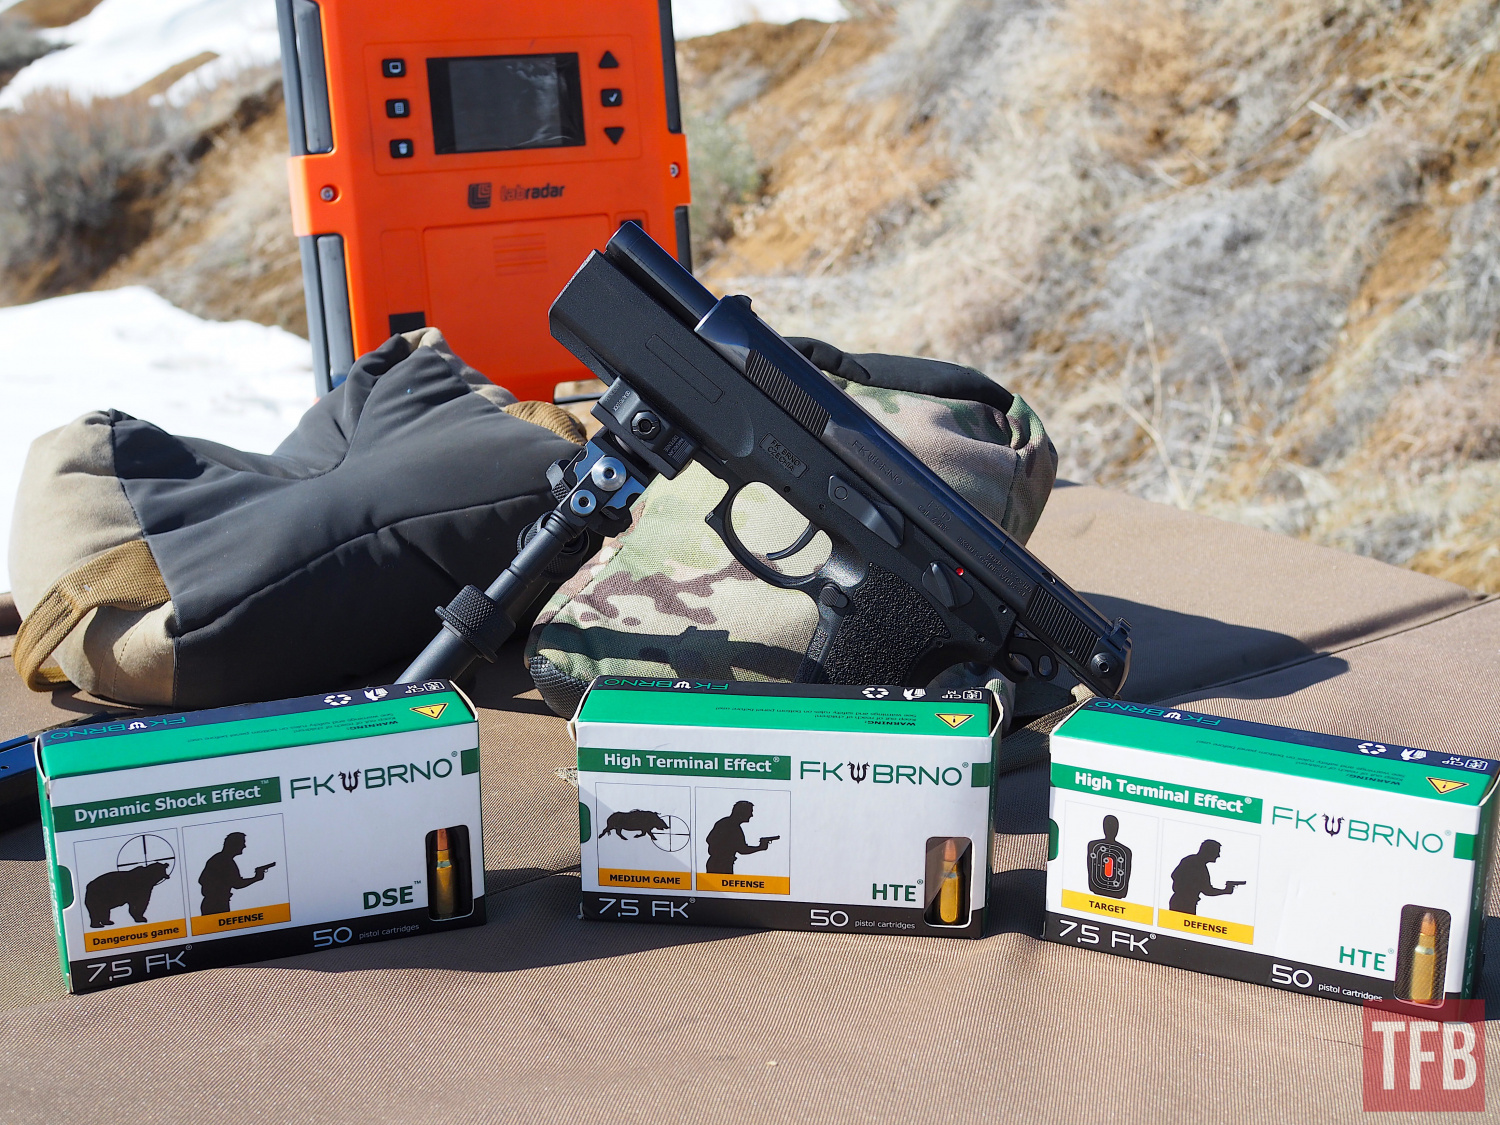 Labradar results showed serious power and velocity with all loads. The FK Brno PSD is a handgun with the power of a rifle.